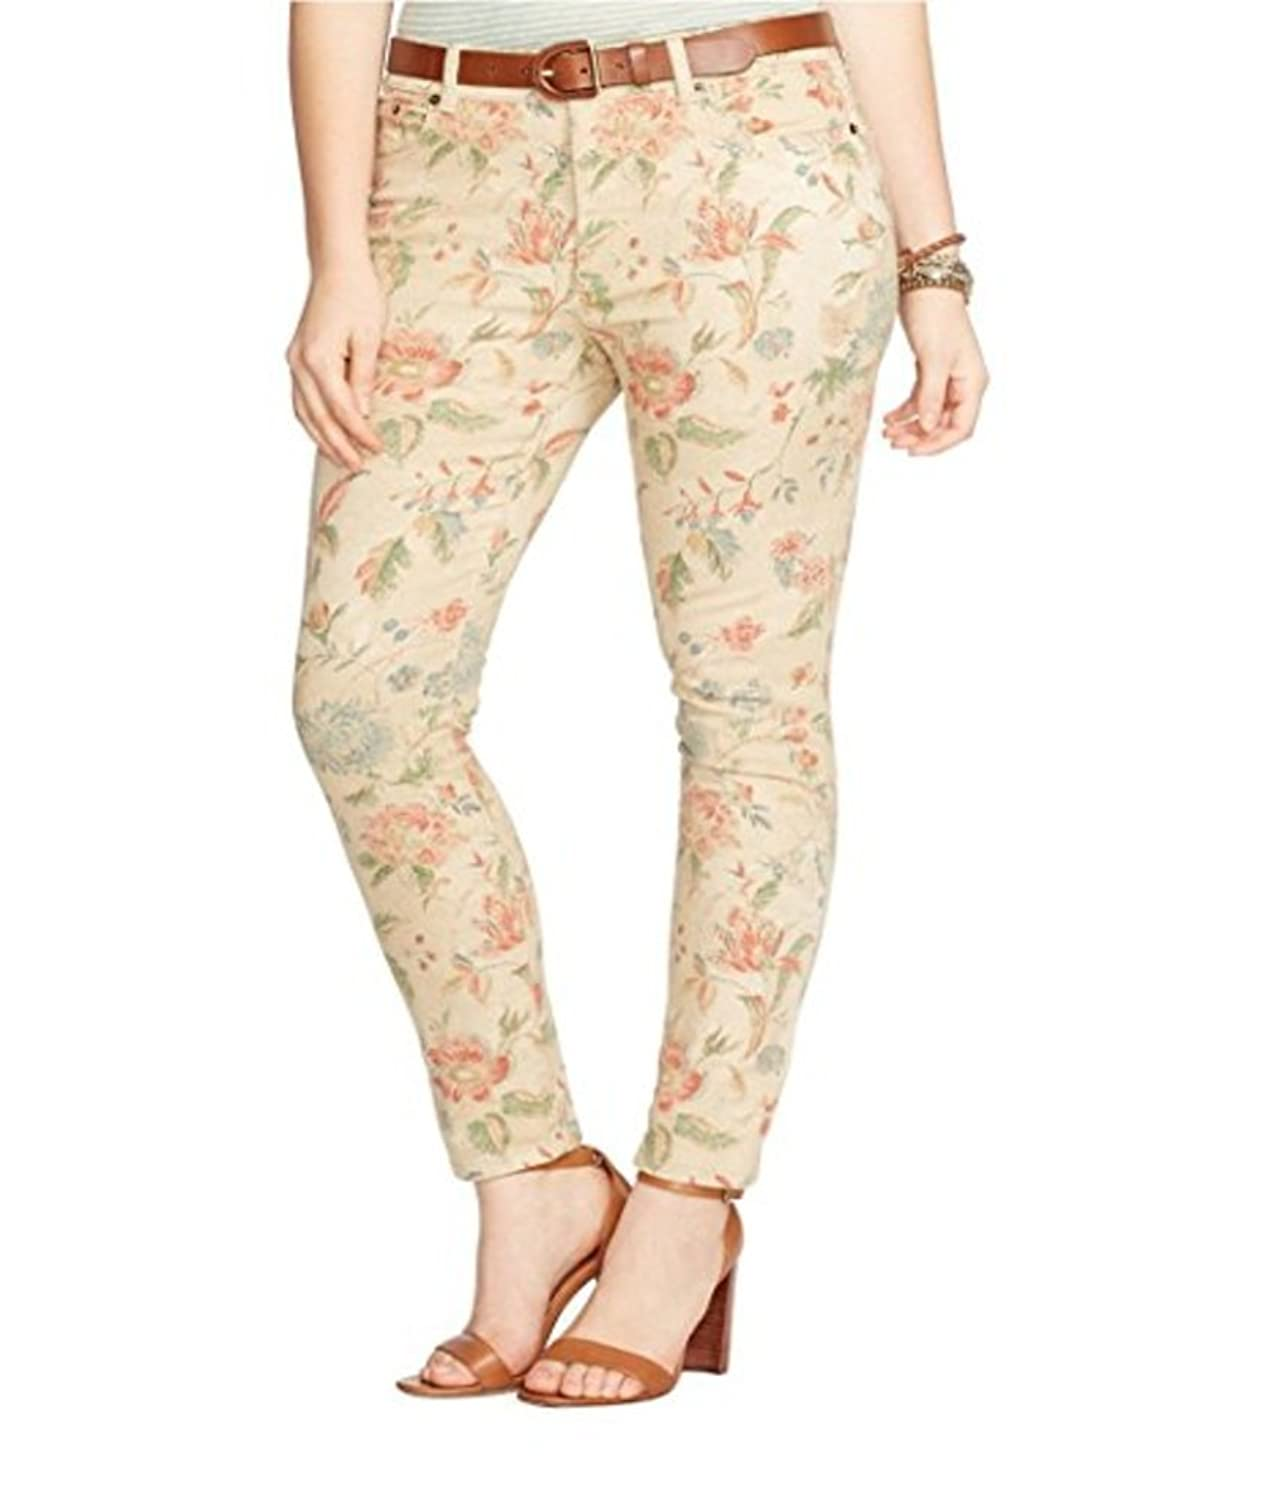 Lauren Ralph Lauren Womens Floral-Print Stretch Skinny Jean, Light Tan Multi, 8